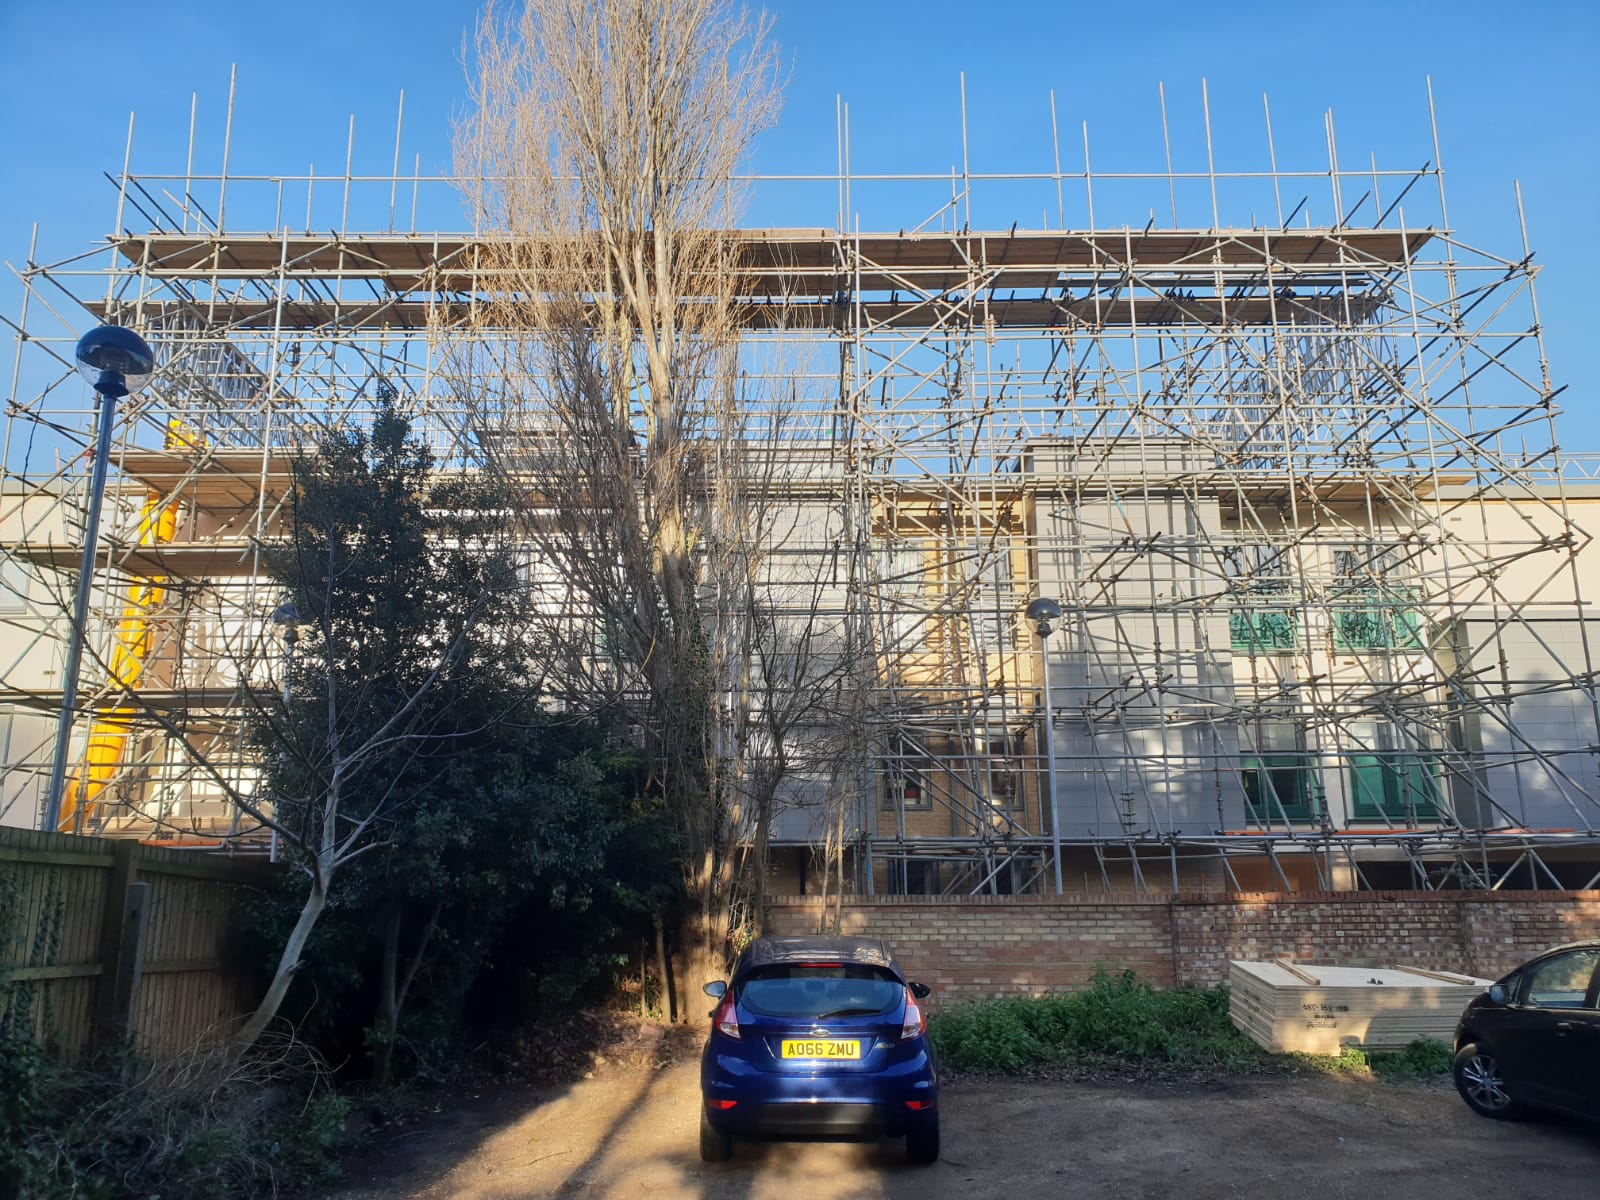 Earls Scaffolding - Access & Temporary Roof Scaffolding - Huntingdon Care Home - Industrial Scaffolding v16